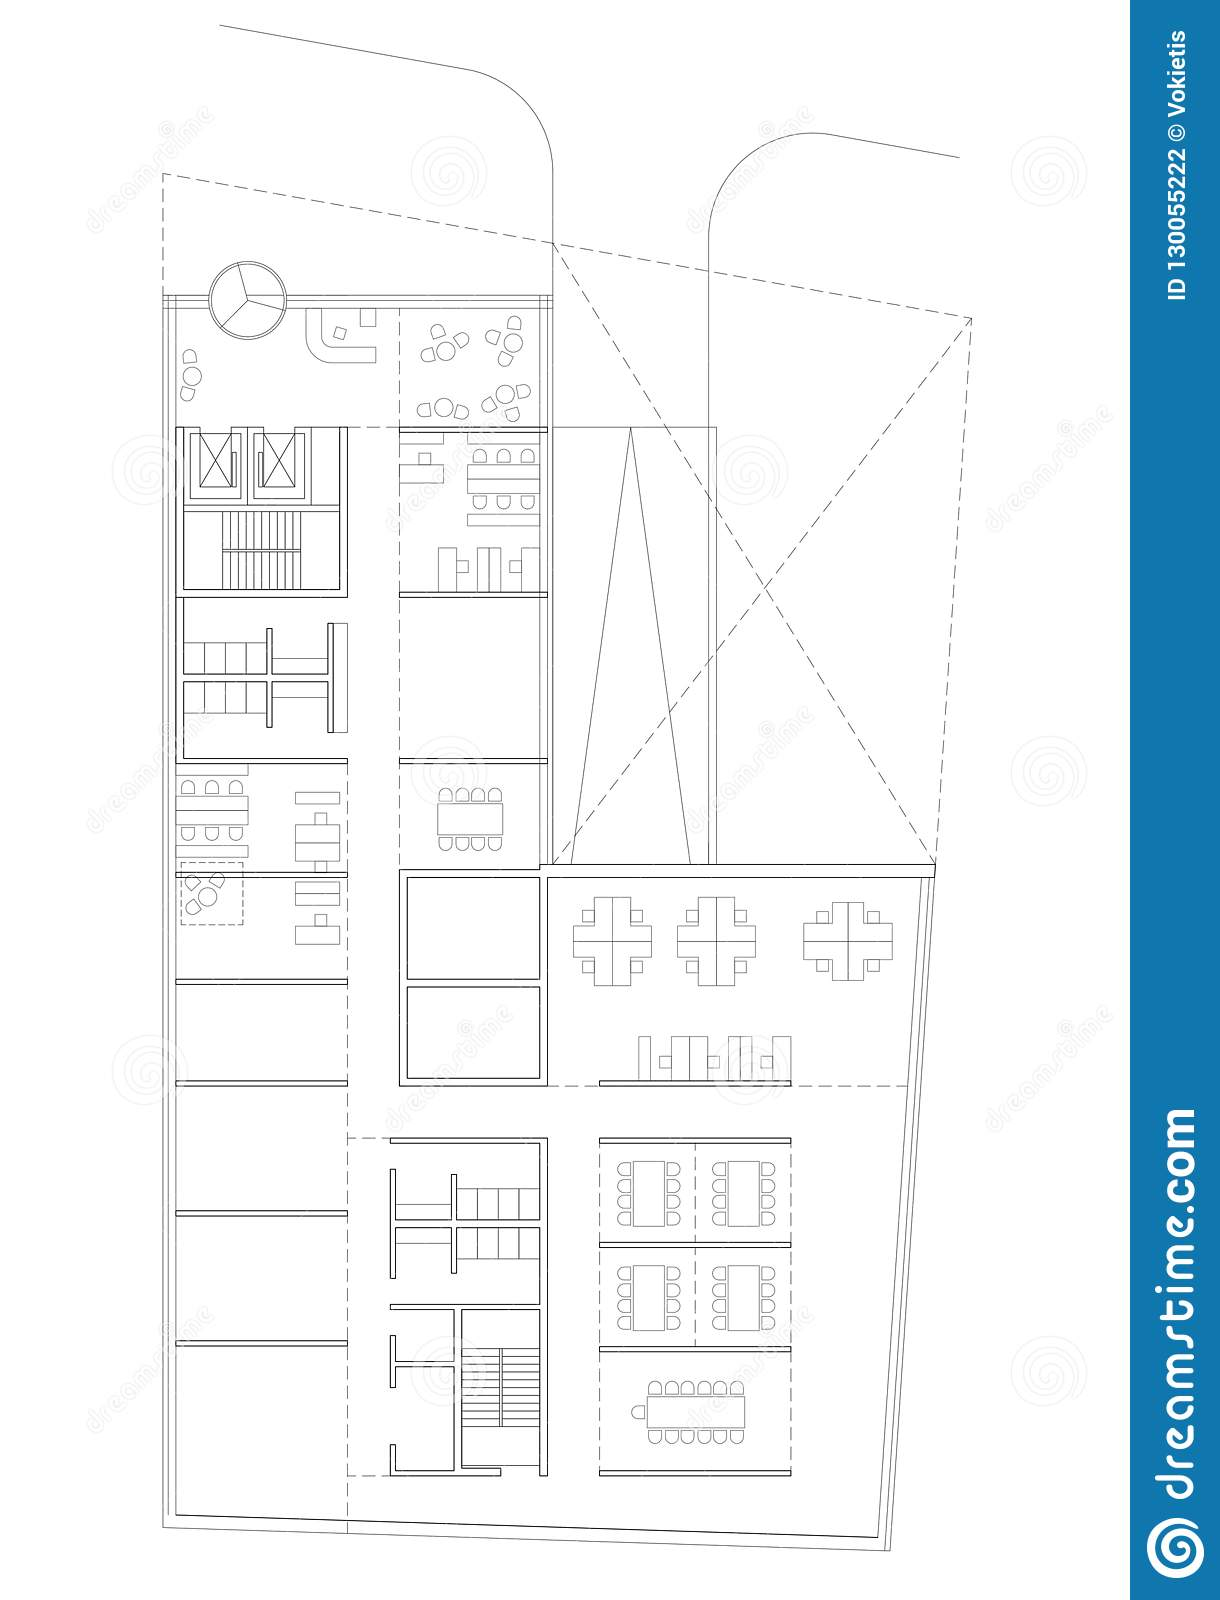 2d Drawing Floor Plan Of The Commercial Building Stock Illustration Illustration Of Commercial Contemporary 130055222